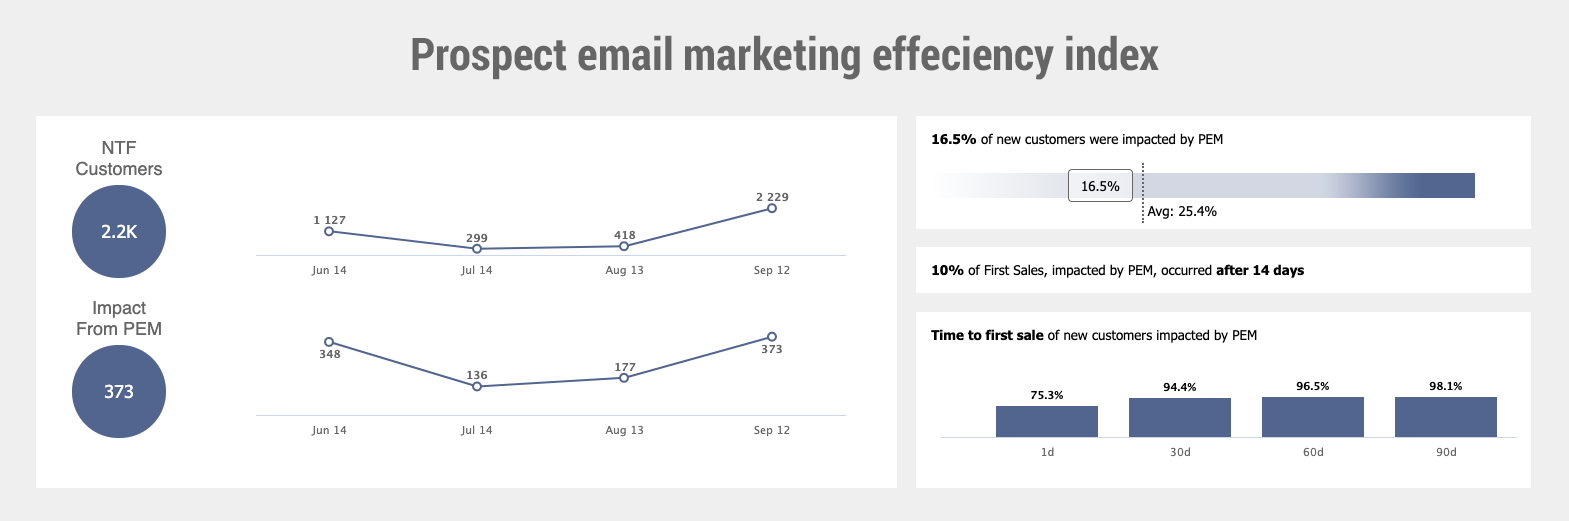 Prospect email marketing efficiency index